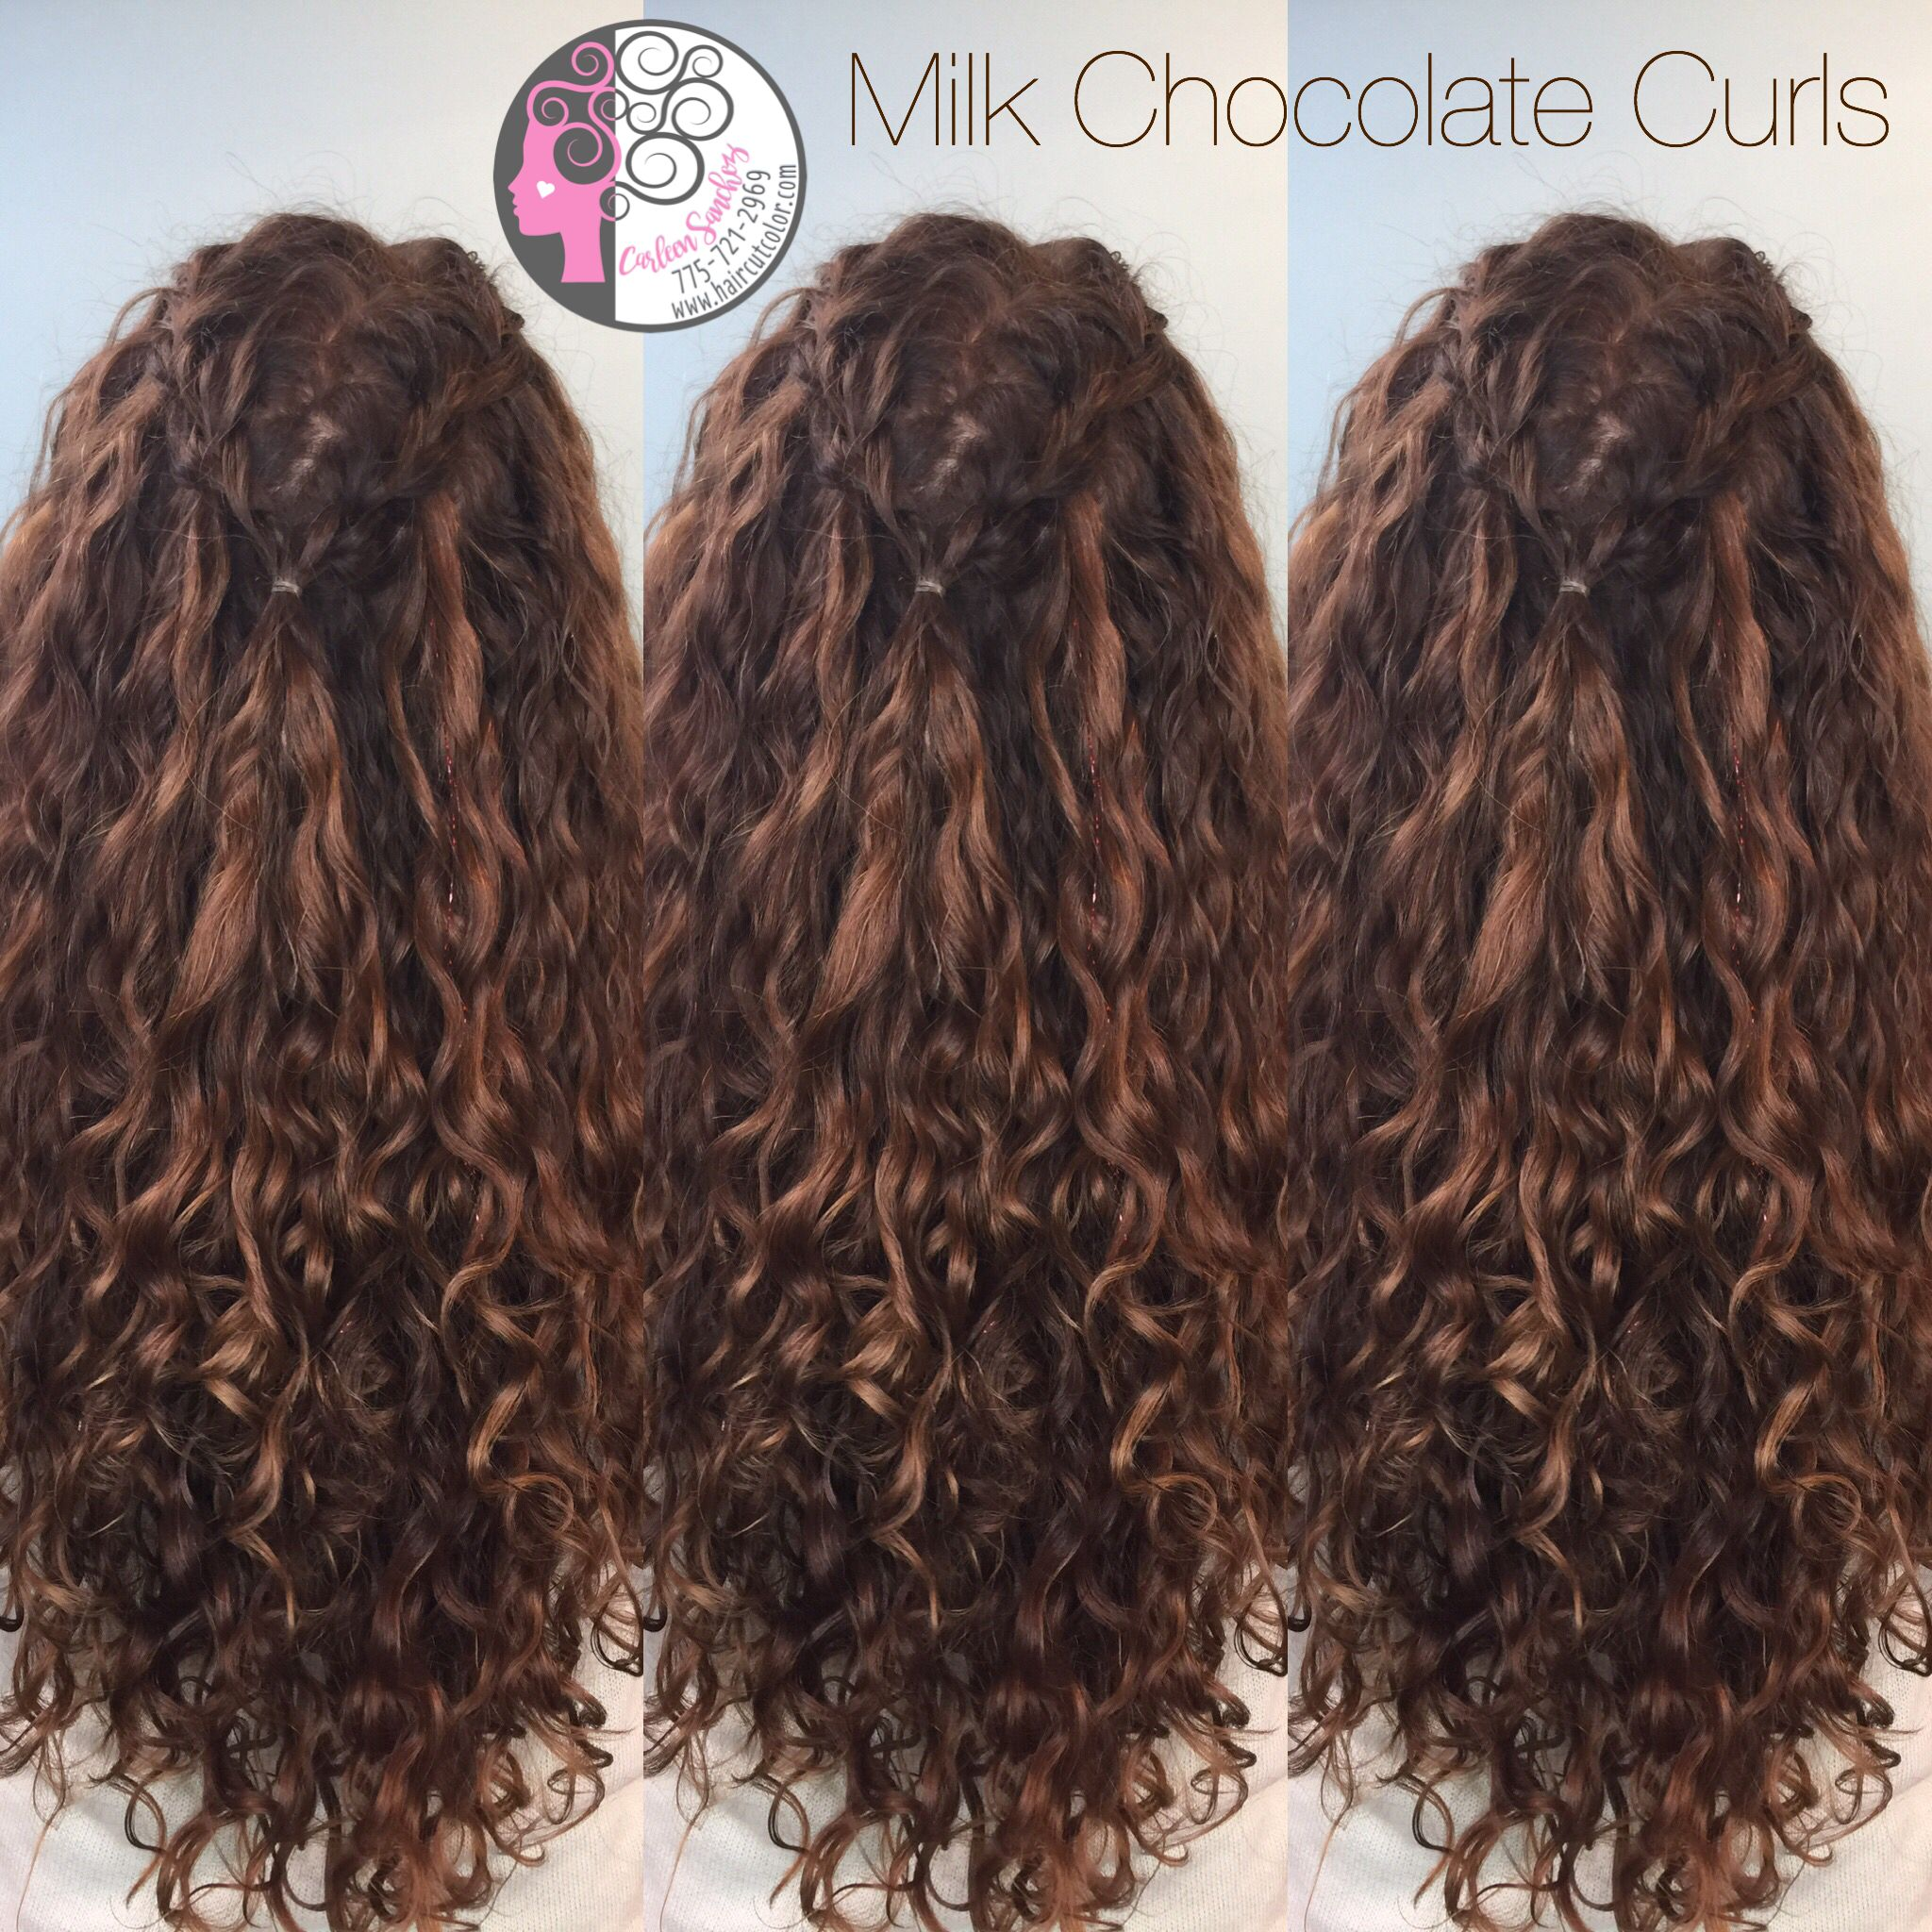 Chocolate Balayage On Naturally Curly Hair By Carleen Sanchez Nevada S Curl Expert Www Haircutcolor Curly Hair Styles Naturally Curly Hair Styles Balayage Hair